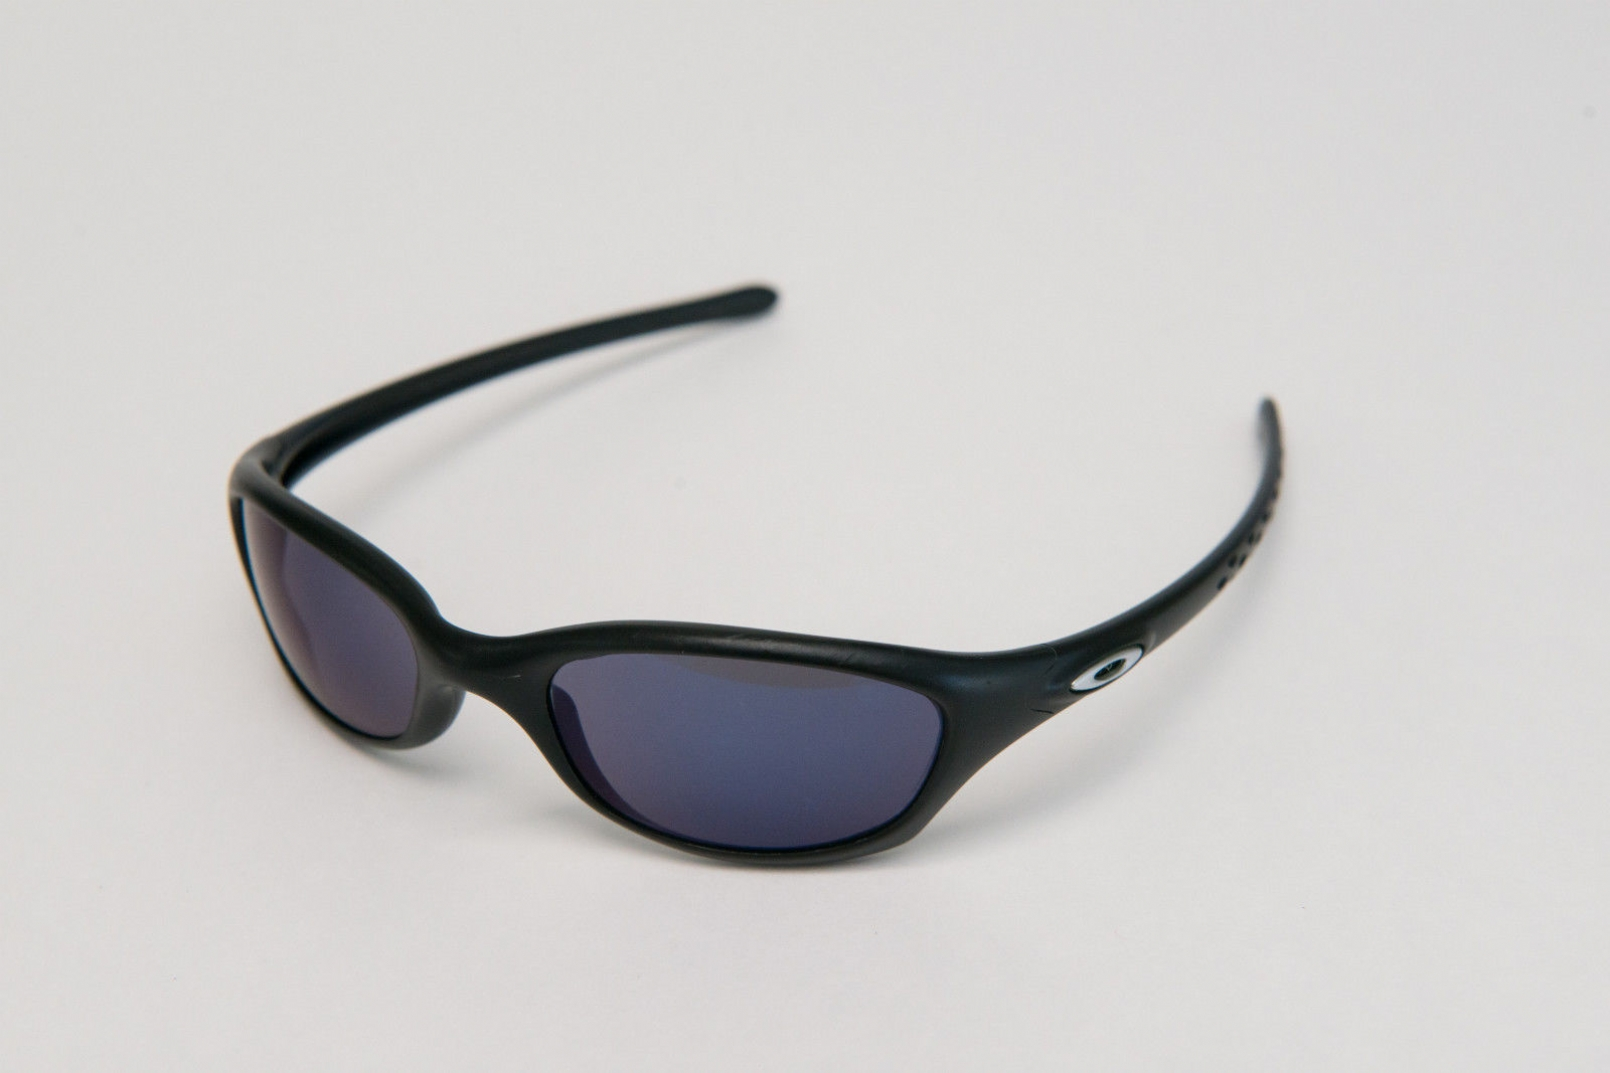 Oakley Jupiter Carbon Polarized 2917 together with Lu tes Oakley Jupiter Carbon besides Bags Oakley Jupiter Carbon Ice Iridium as well Guess Handbag Patent Black In South Africa 463087 furthermore 218 Lu te Oakley Jupiter. on oakley jupiter carbon matte black ice iridium polarized